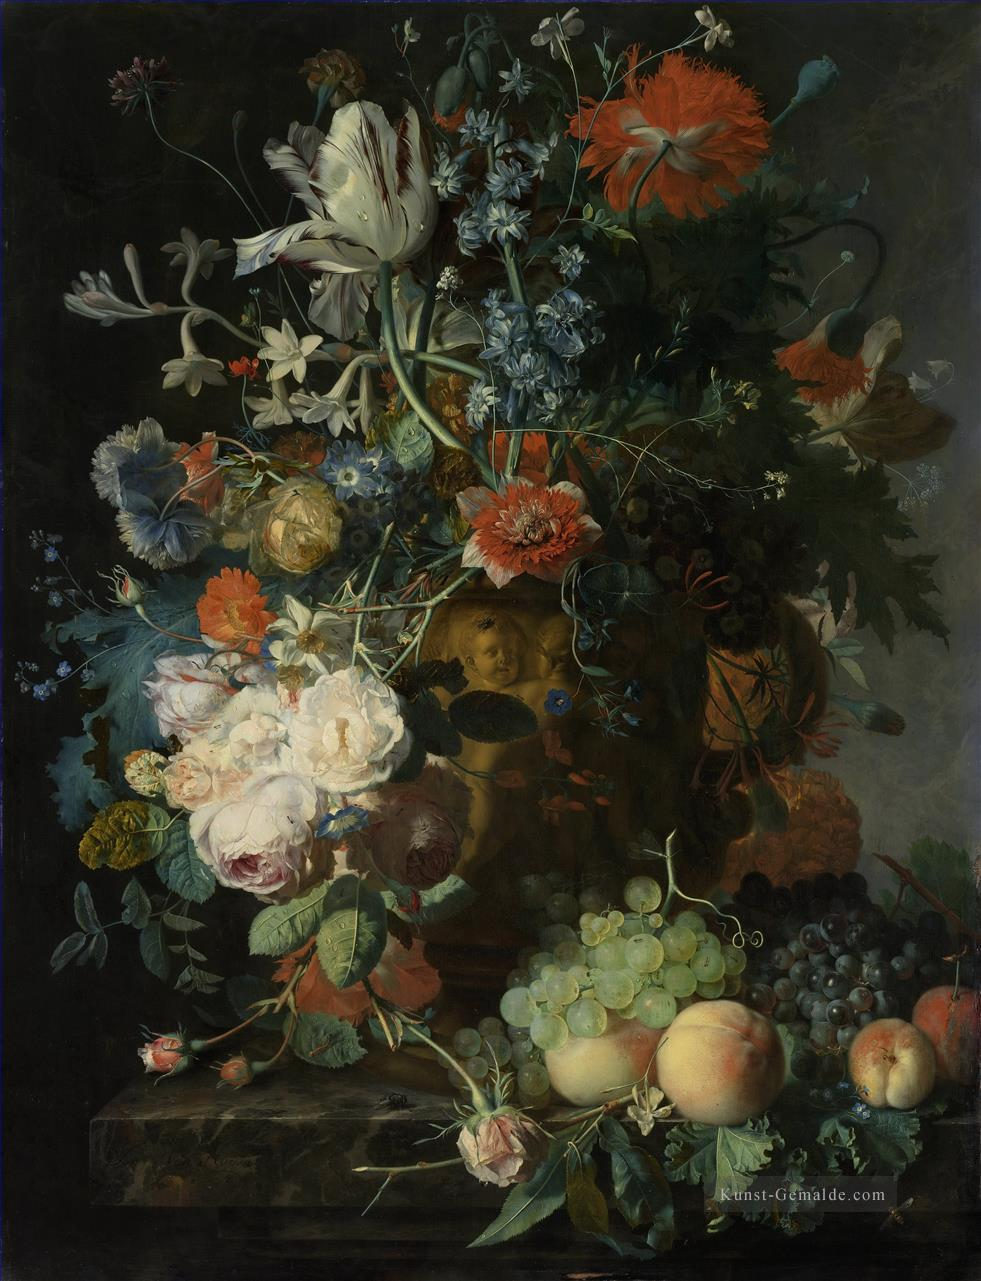 Stillleben with Flowers and Fruit 4 Jan van Huysum Klassik Ölgemälde